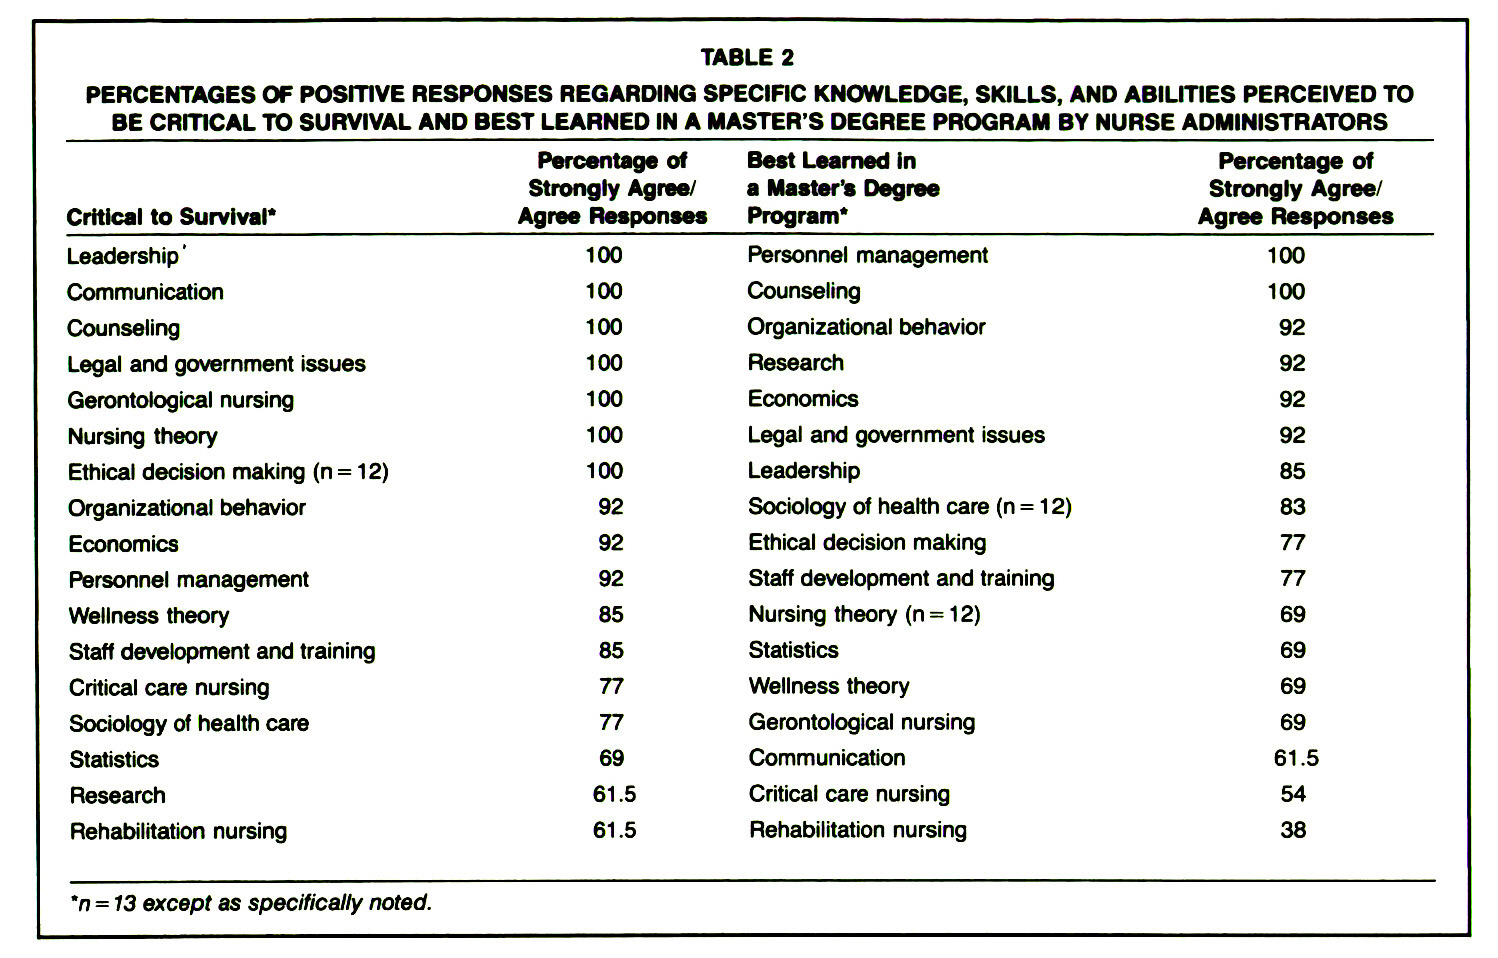 TABLE 2PERCENTAGES OF POSfTIVE RESPONSES REGARDING SPECIFIC KNOWLEDGE, SKILLS, AND ABILITIES PERCEIVED TO BE CRITICAL TO SURVIVAL AND BEST LEARNED IN A MASTER'S DEGREE PROGRAM BY NURSE ADMINISTRATORS